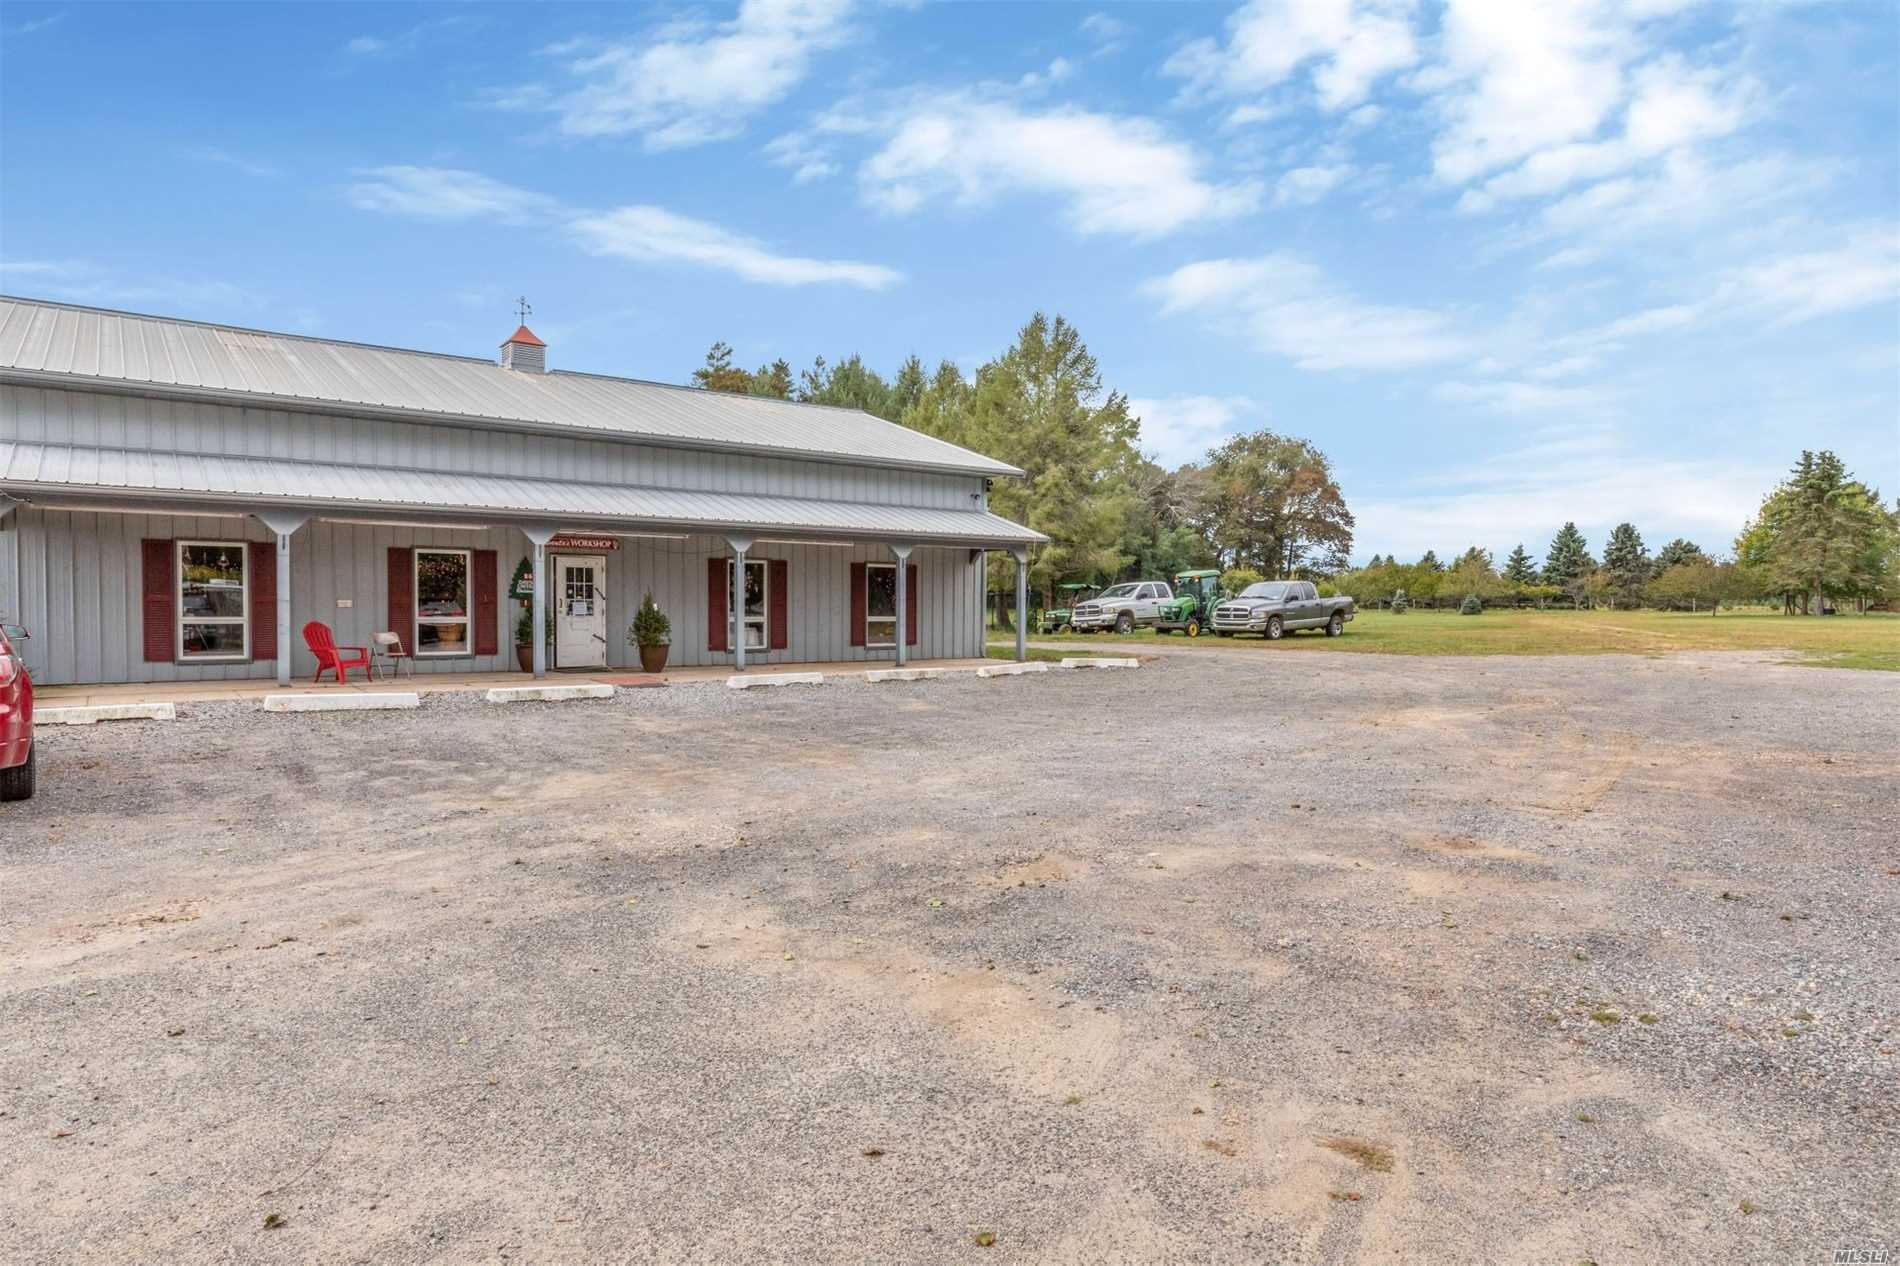 Once In A Lifetime To Purchase A Successful Cutchogue Christmas Tree Farm And Business, Which Consists Of An 1800 Farmhouse 3Br, 1.5Ba Lr, Dr, Eik, Cac. 8000 Sq.Ft. Morton Building, 4 Irrigation Wells, 5.2 Full Rights Acres, 22.7 Ag. Acres For A Total Of 27.9 Ac. Presently Planted With 15-20, 000 Xmas Trees Approx.4, 000 Ready For Xmas 18'